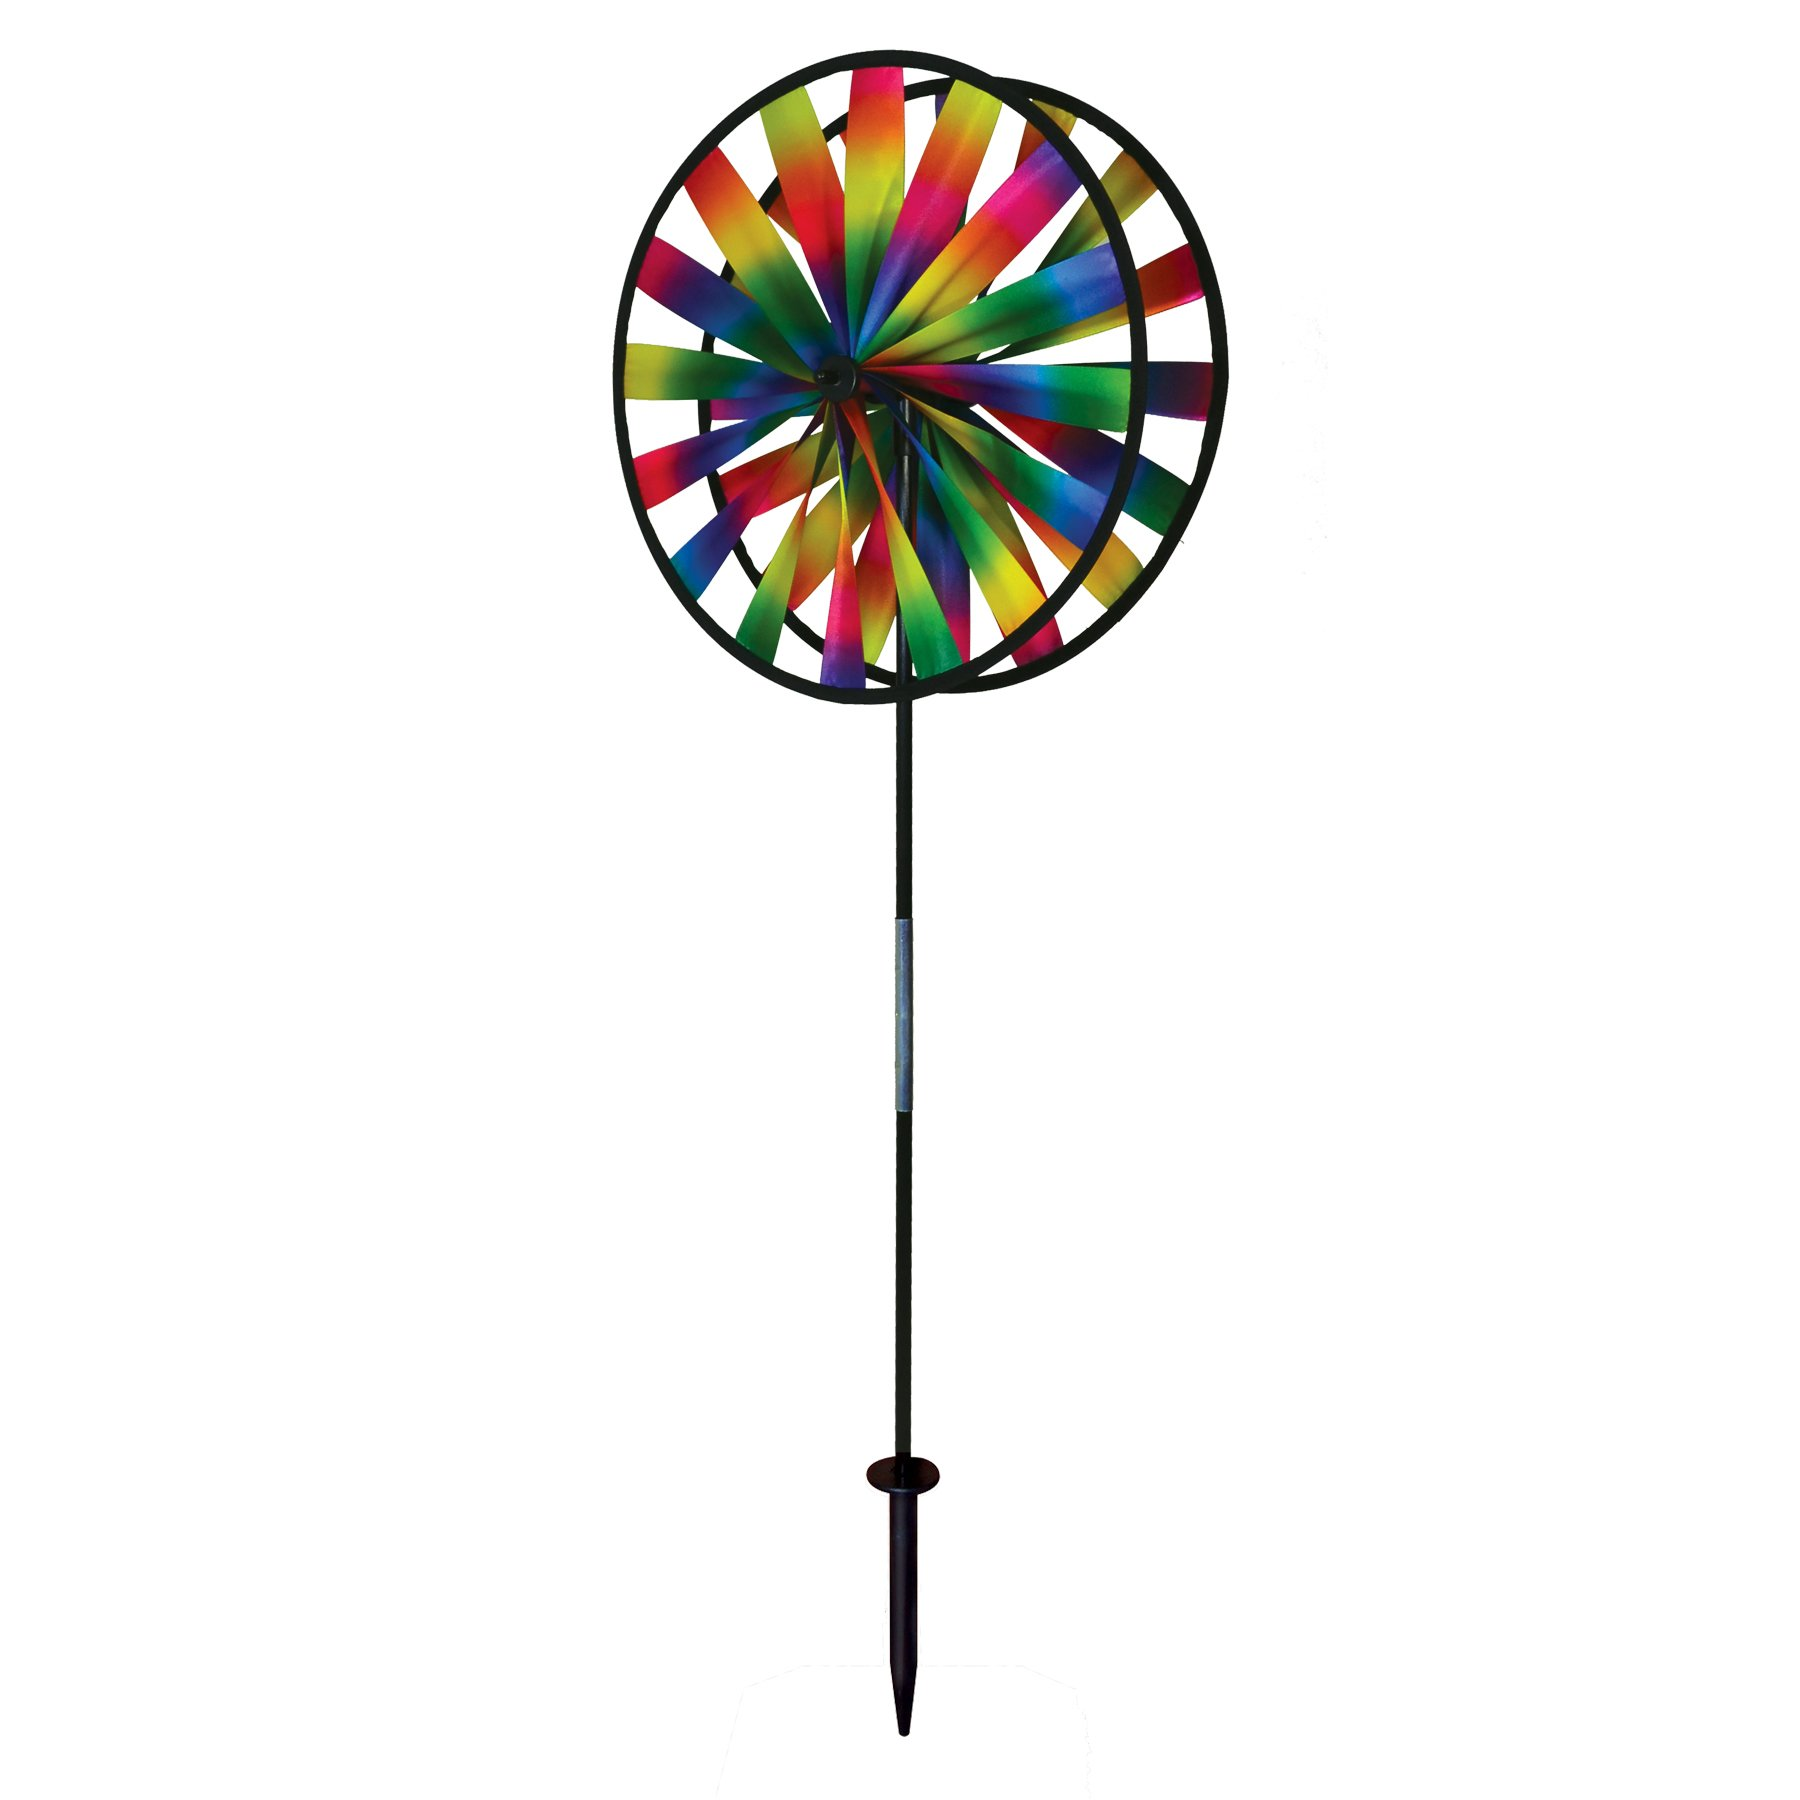 In the Breeze 2719 Kaleidoscope Double Wheel Spinner - Colorful Wind Spinner for your Yard and Garden